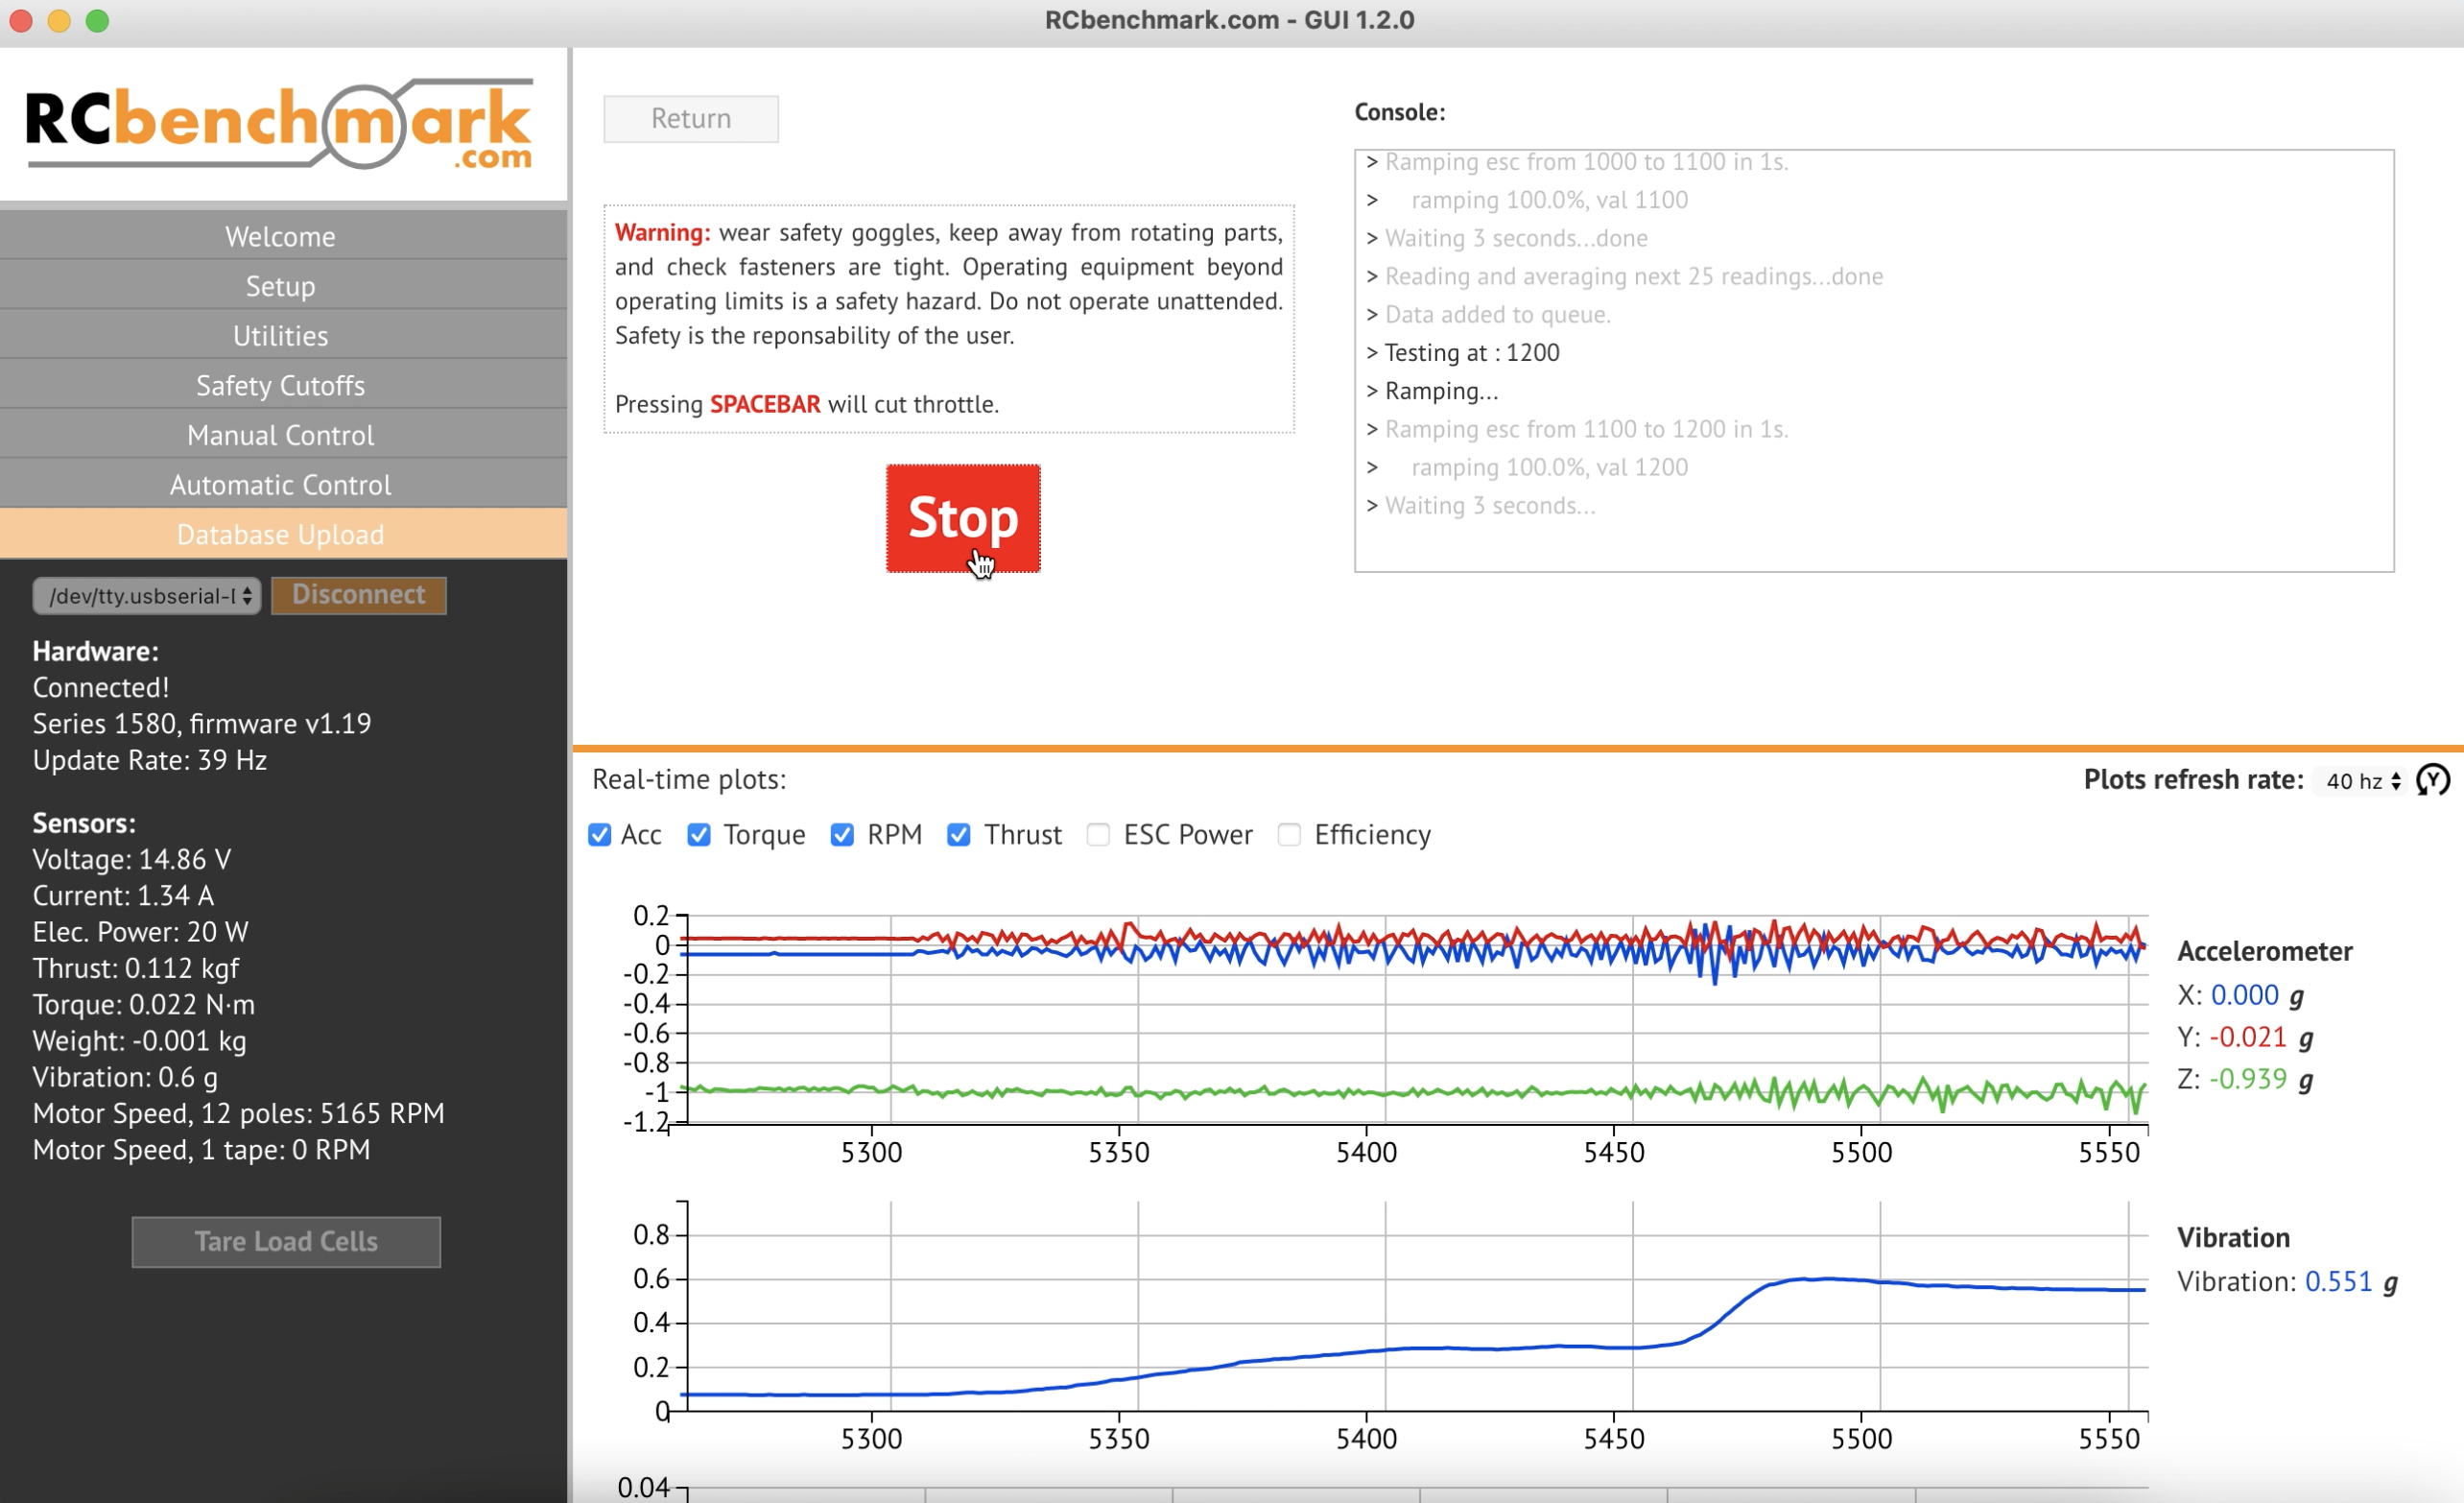 propulsion test in progress with automated test script